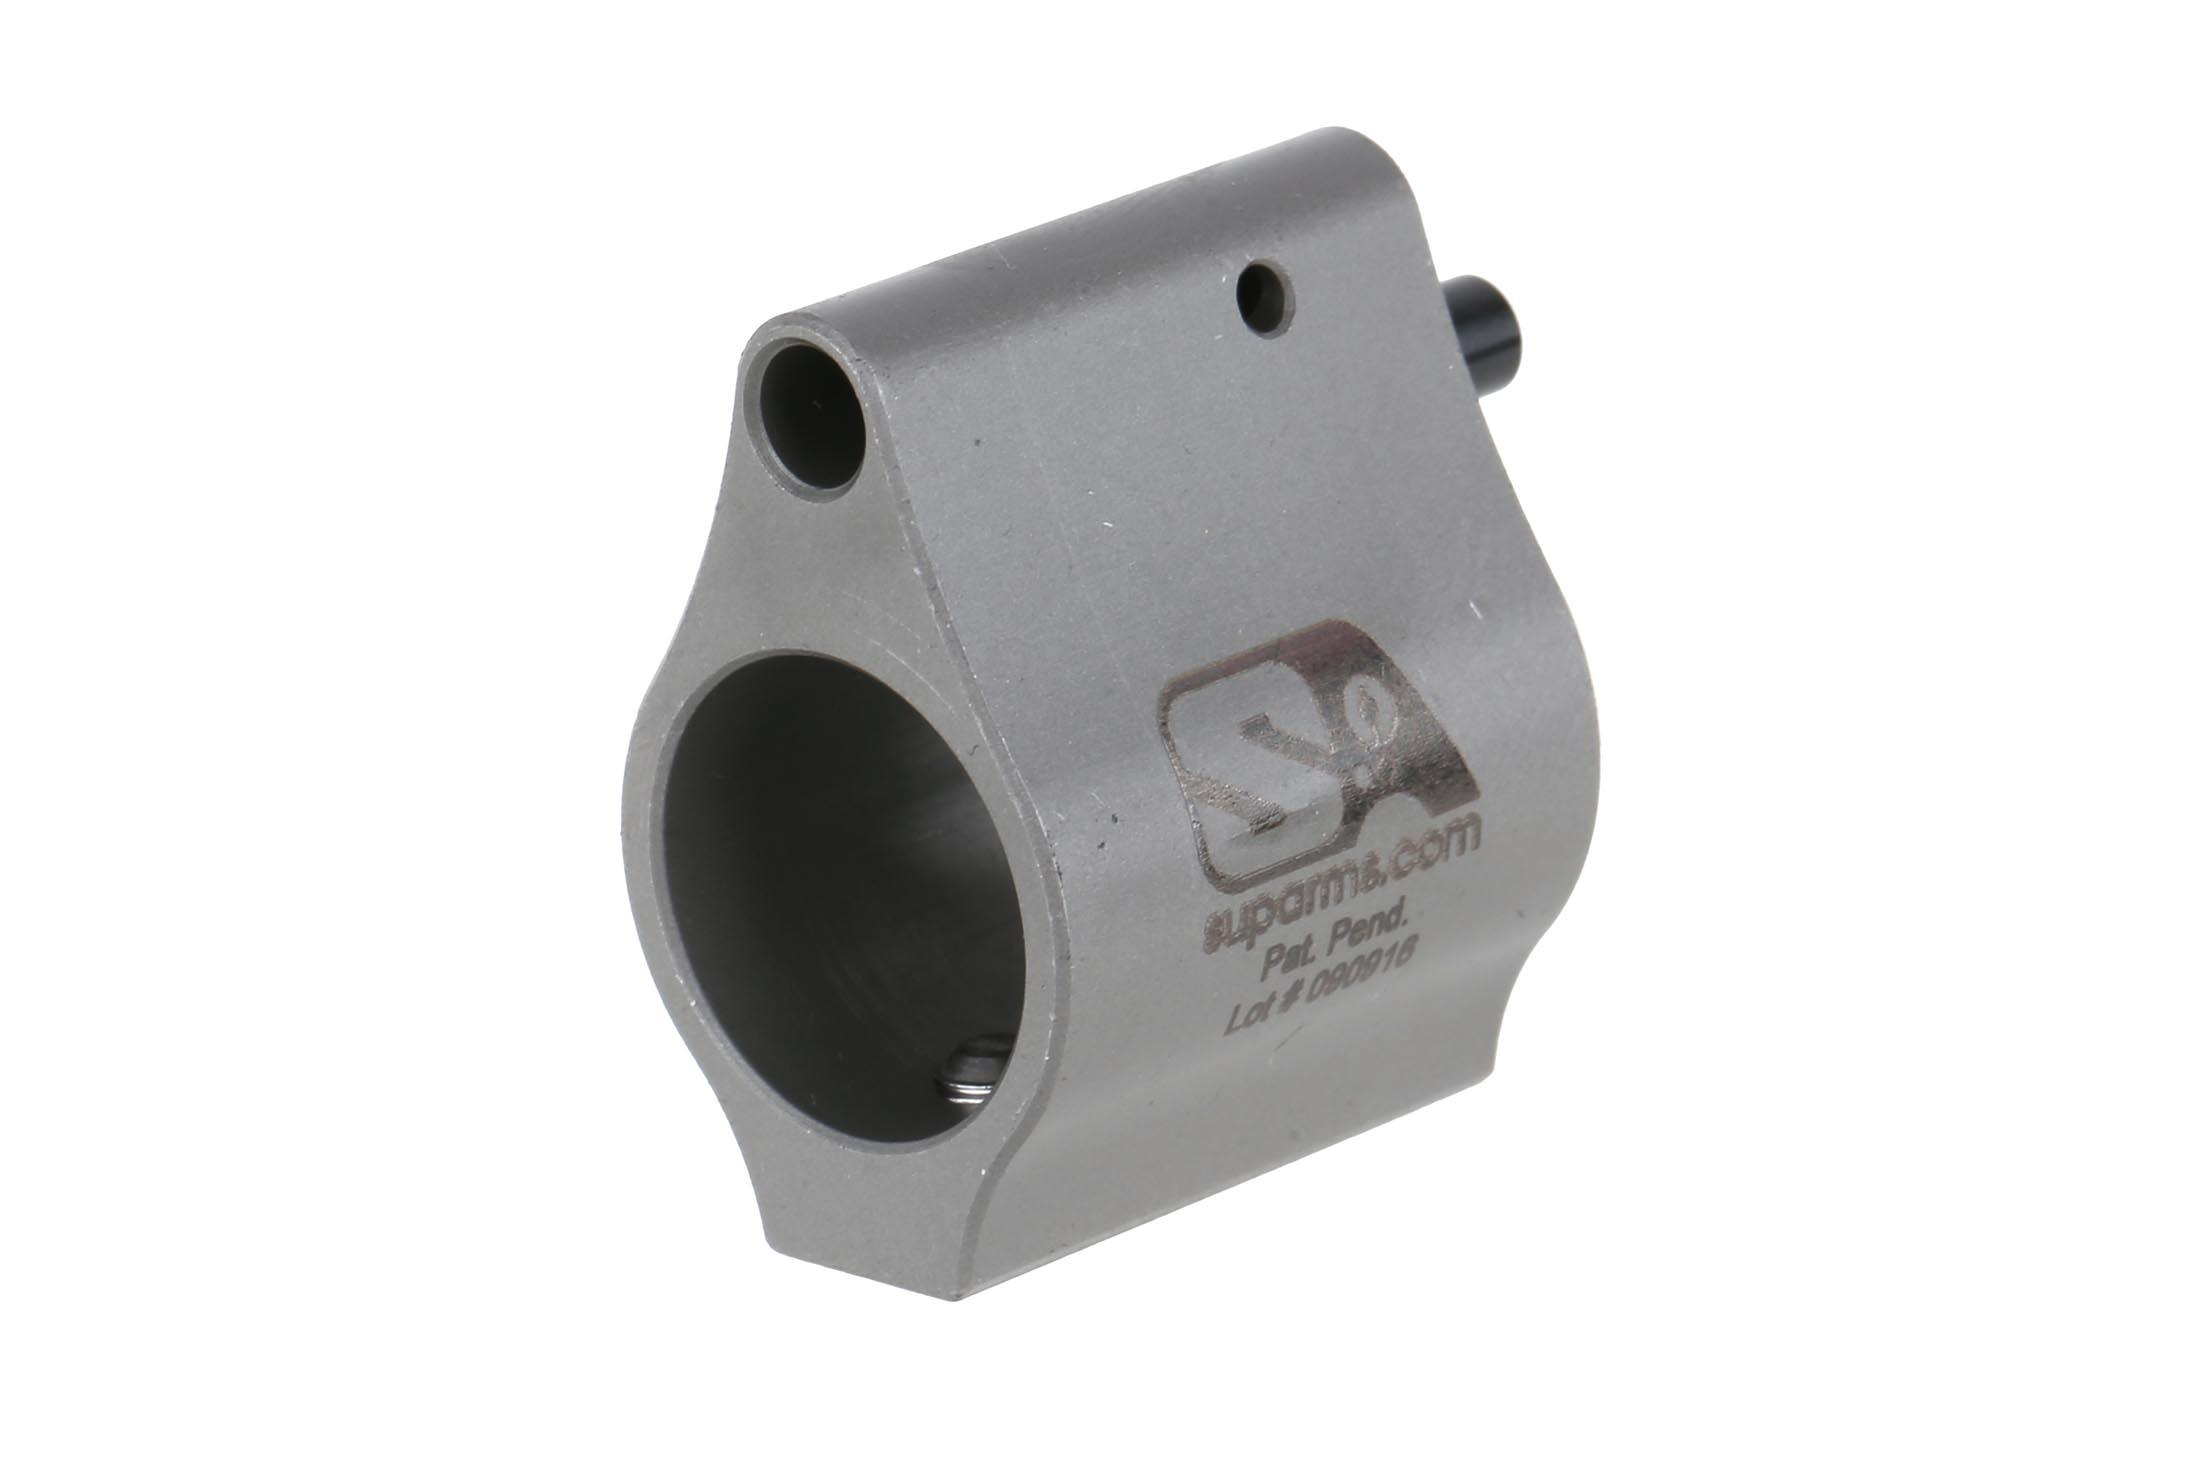 The Superlative Arms bleed off adjustable gas block is machined from 416 stainless steel with a matte finish